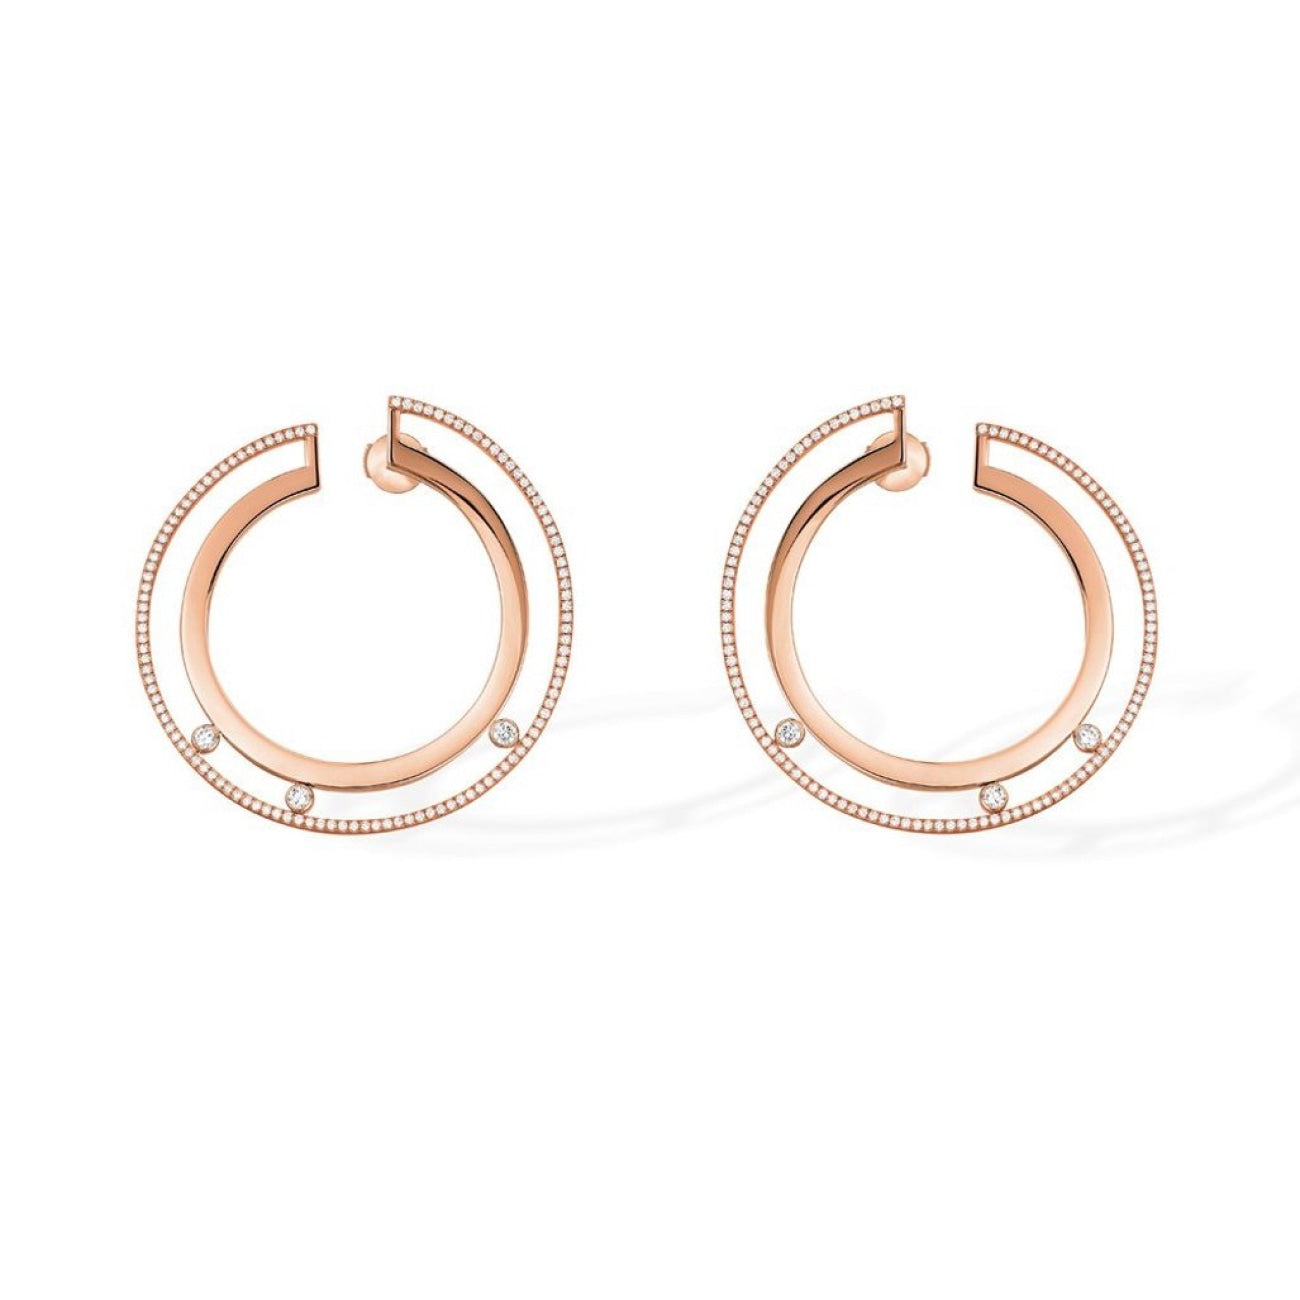 Messika Jewelry - Boucles Hoop Earrings-white Gold | Manfredi Jewels